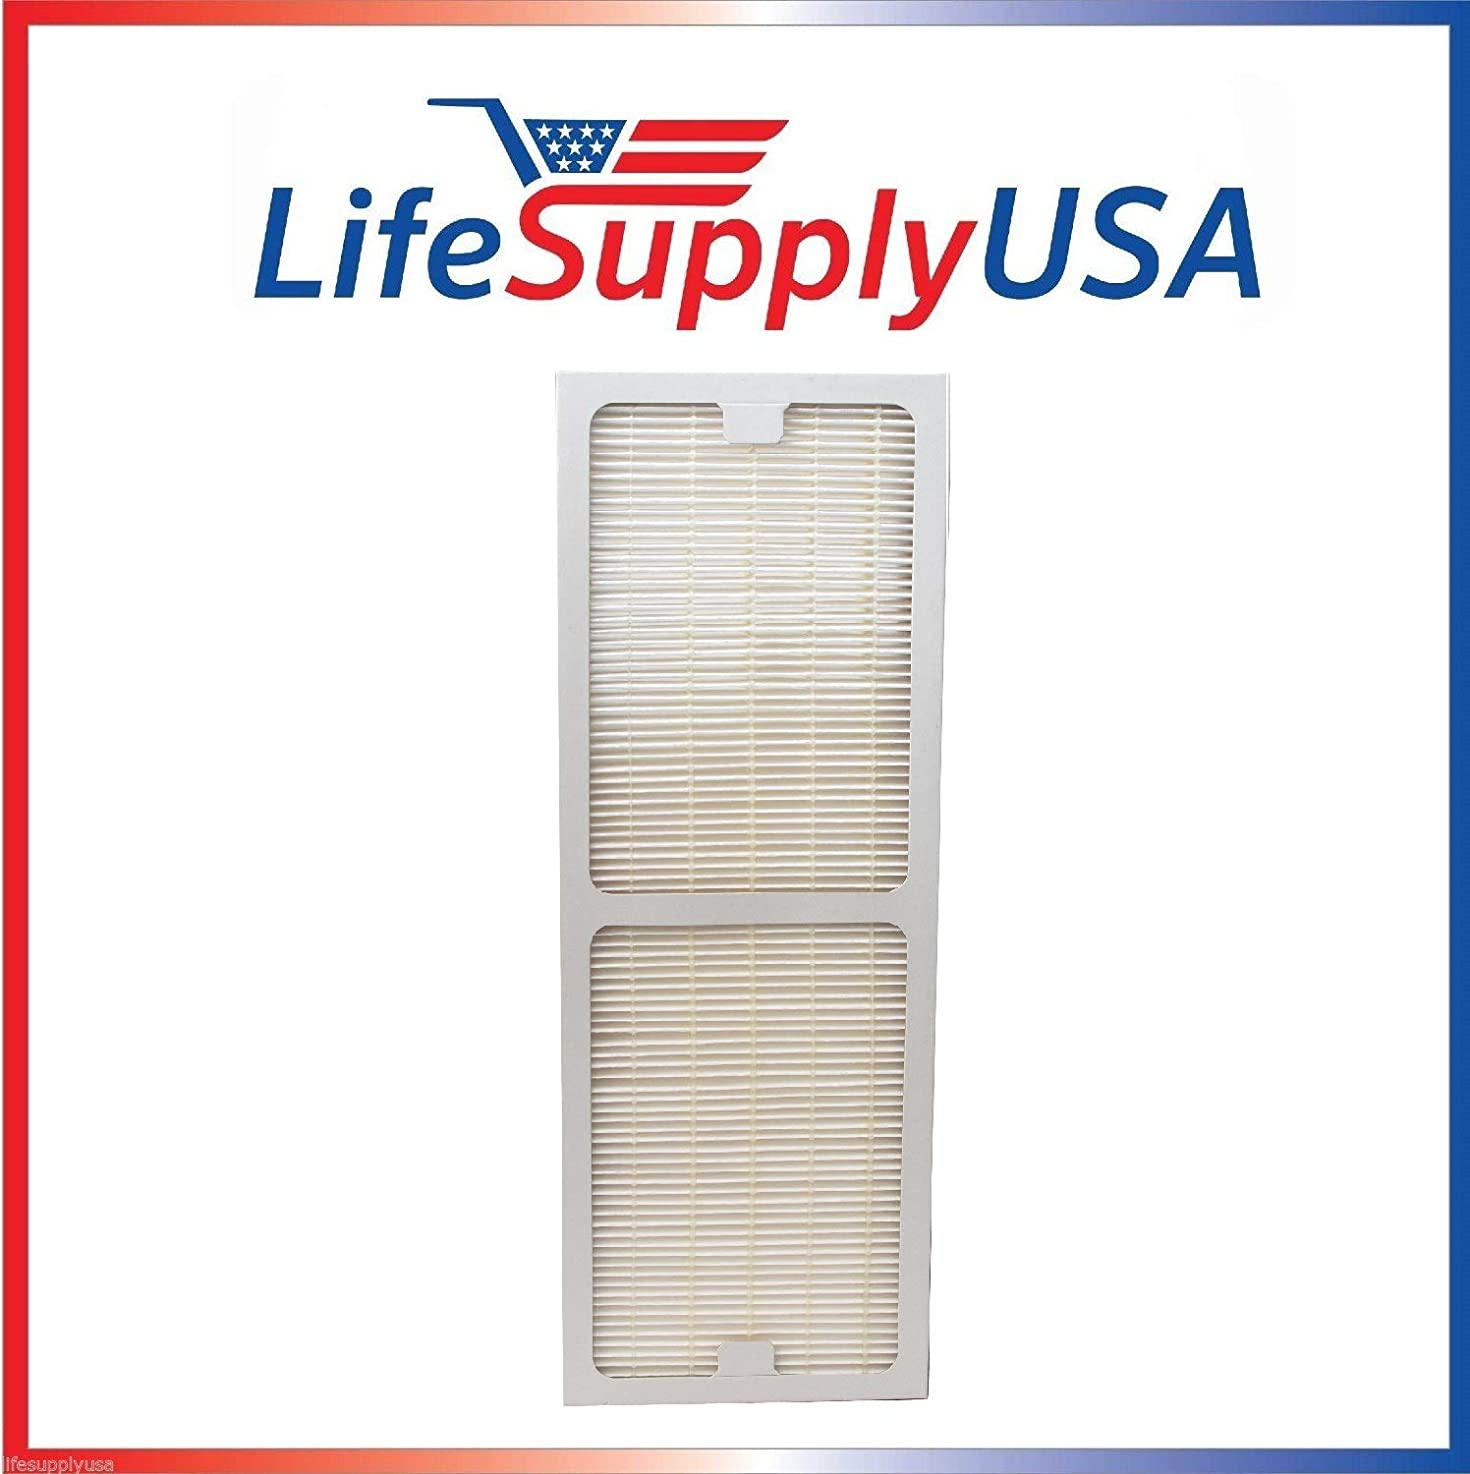 LifeSupplyUSA Replacement HEPA Filter fits Hunter Permalife 30967, 30757, 30755, 30756, 37755